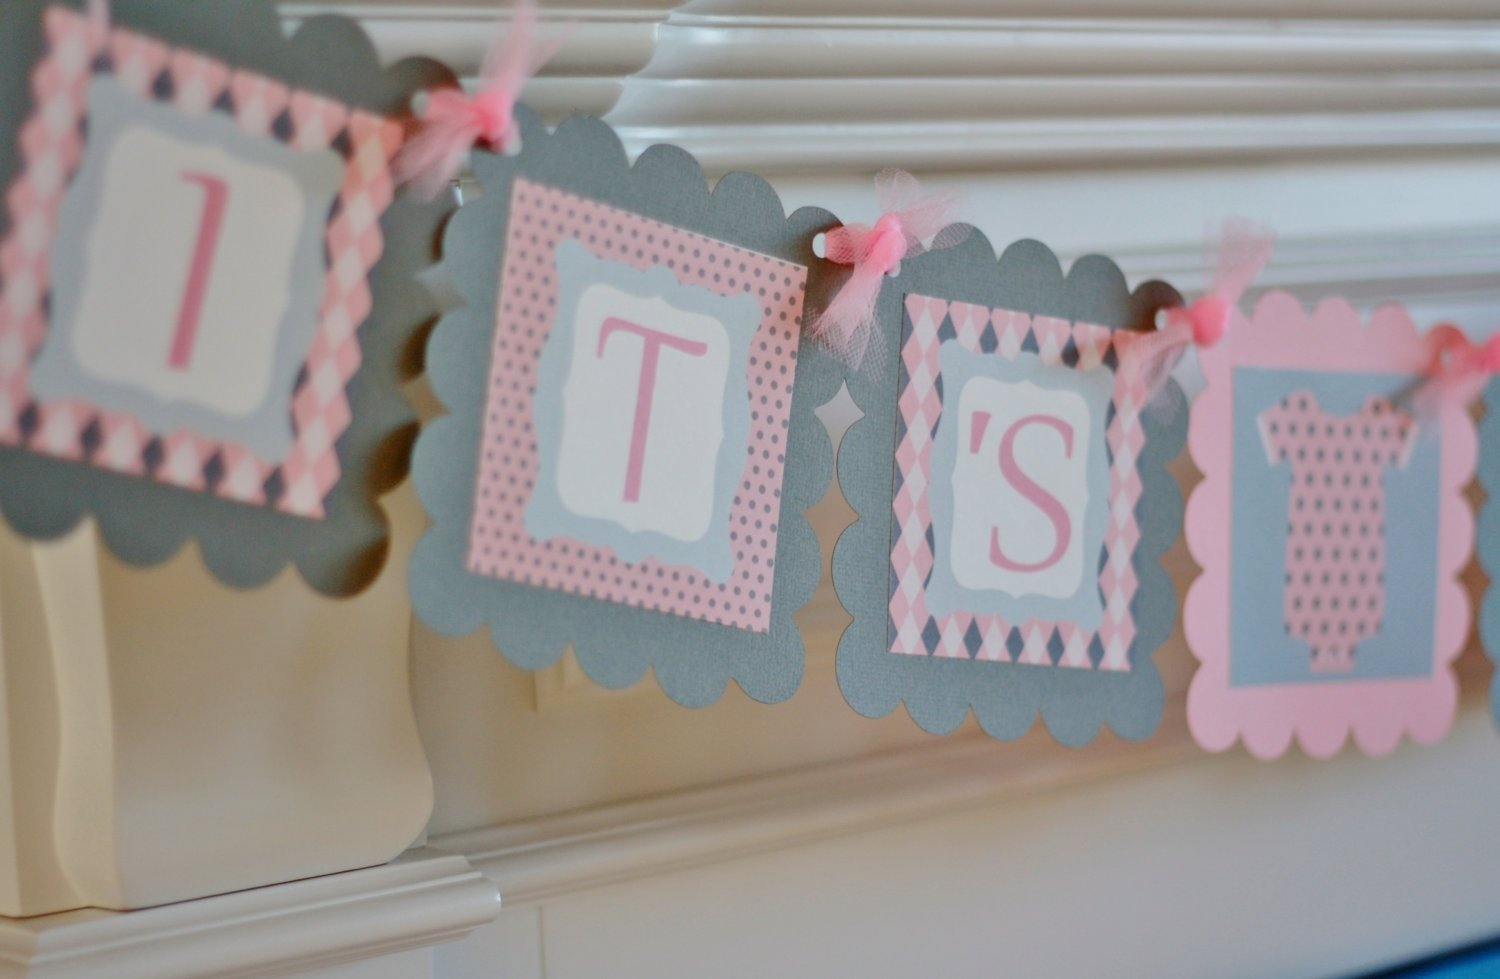 10 Stylish Pink And Gray Baby Shower Ideas imposing decoration grey and pink baby shower fashionable ideas gray 2020